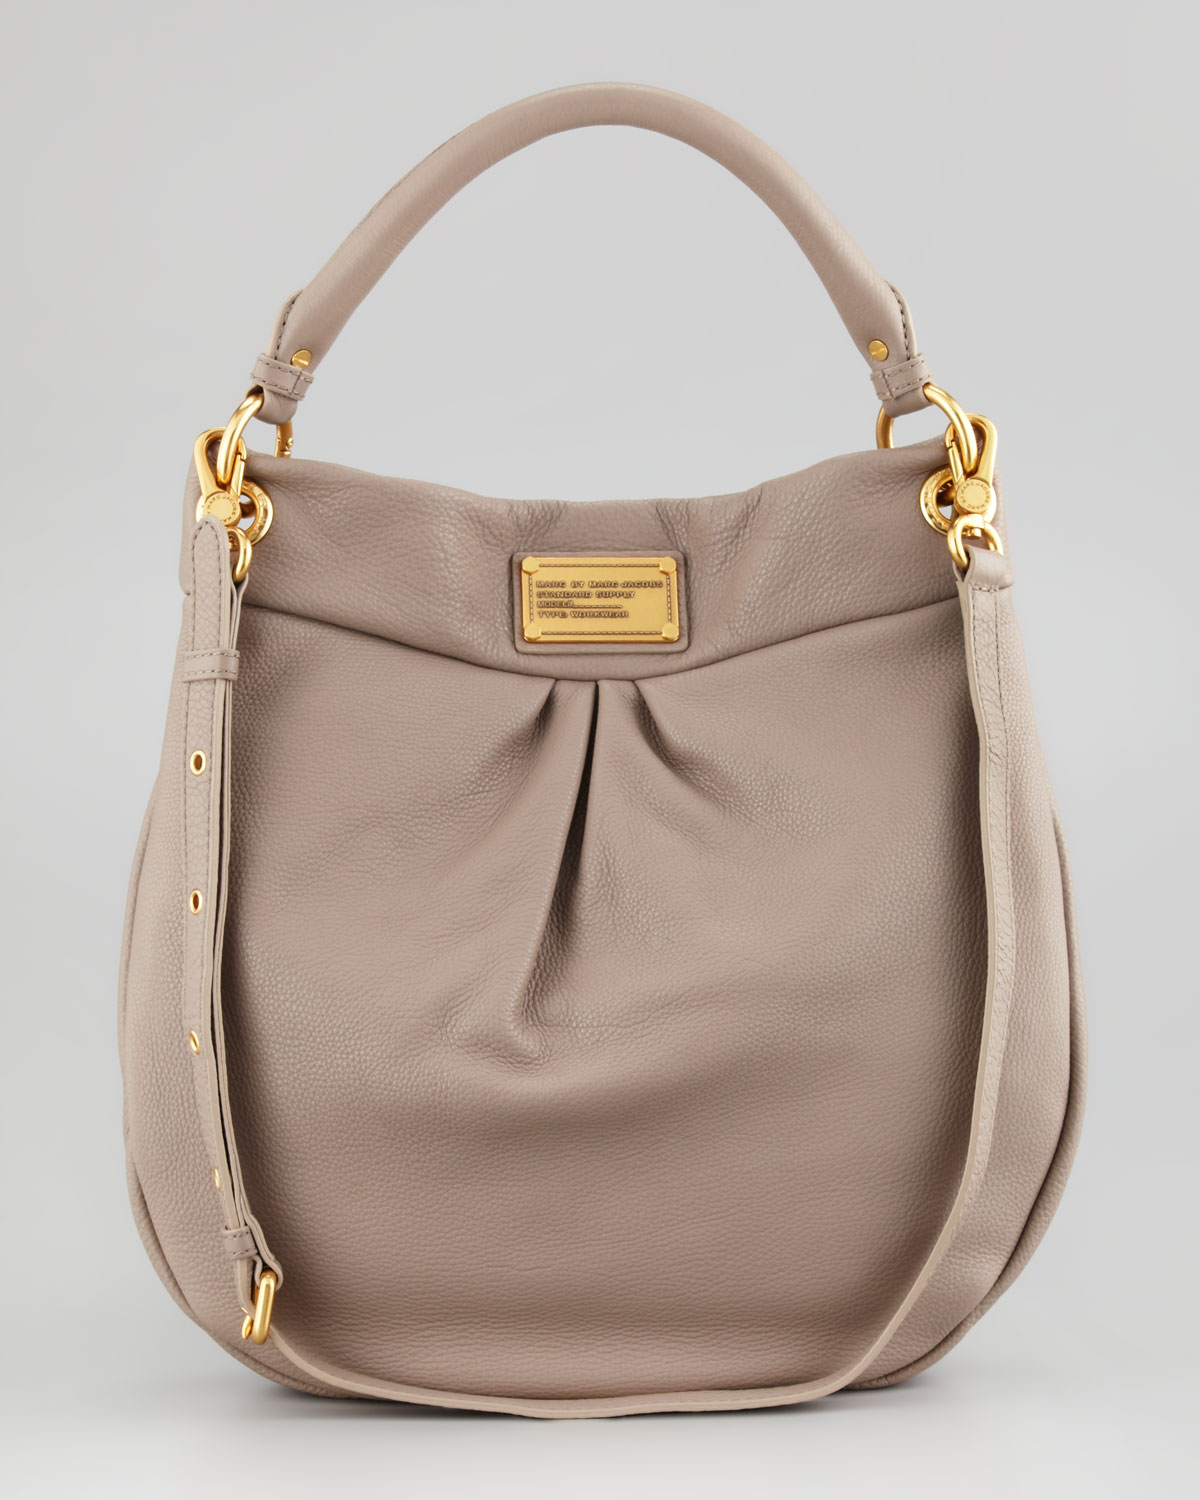 marc by marc jacobs classic q hillier hobo bag in beige lyst. Black Bedroom Furniture Sets. Home Design Ideas